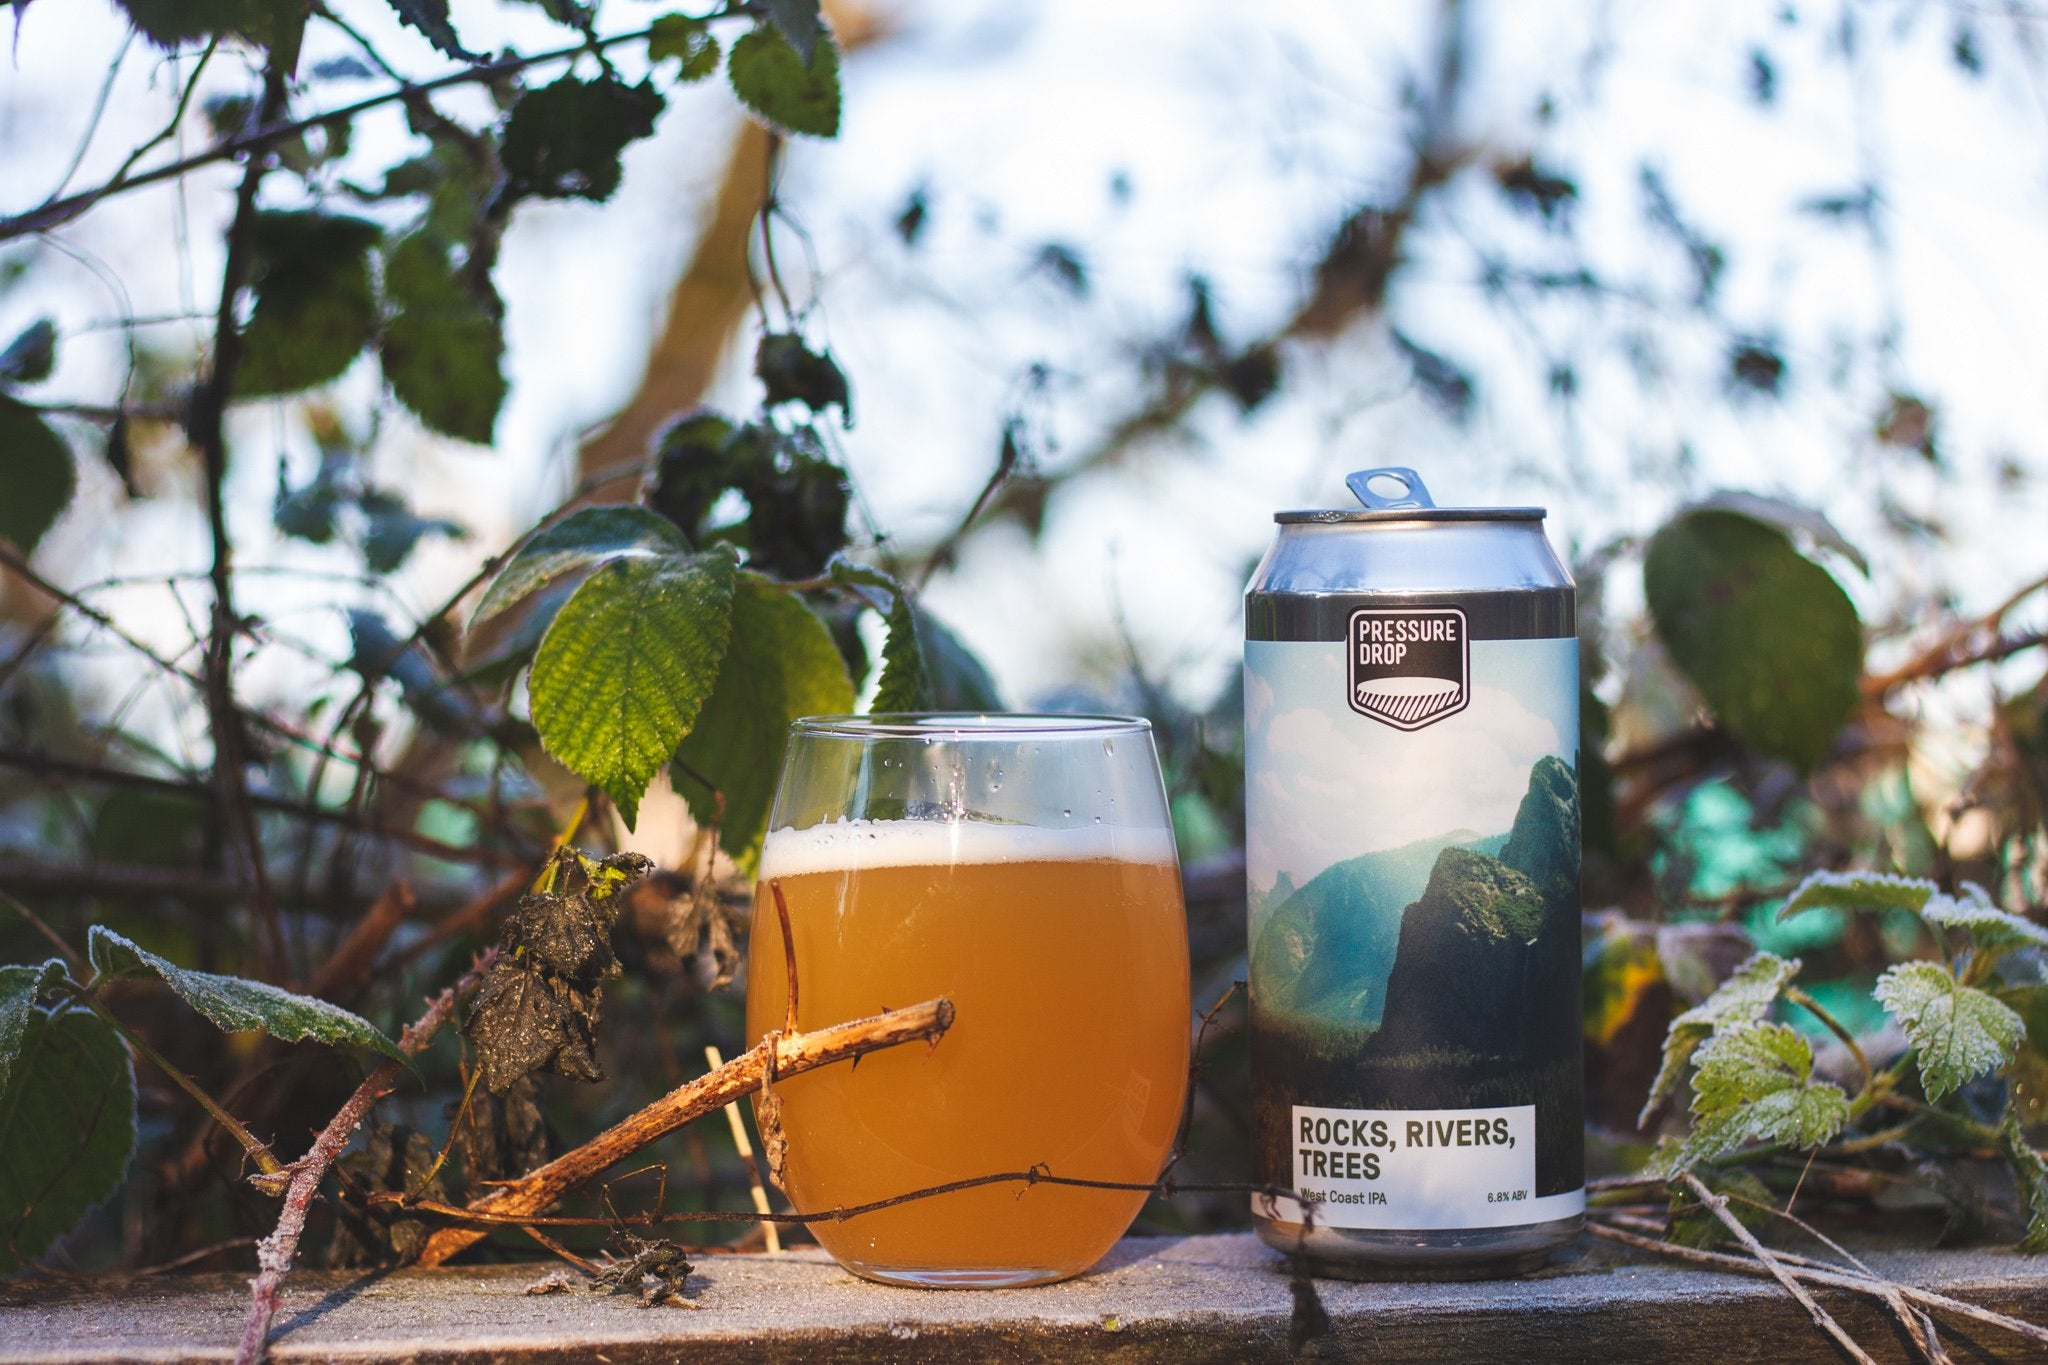 Rocks Rivers Trees - West Coast IPA - West Coast IPA